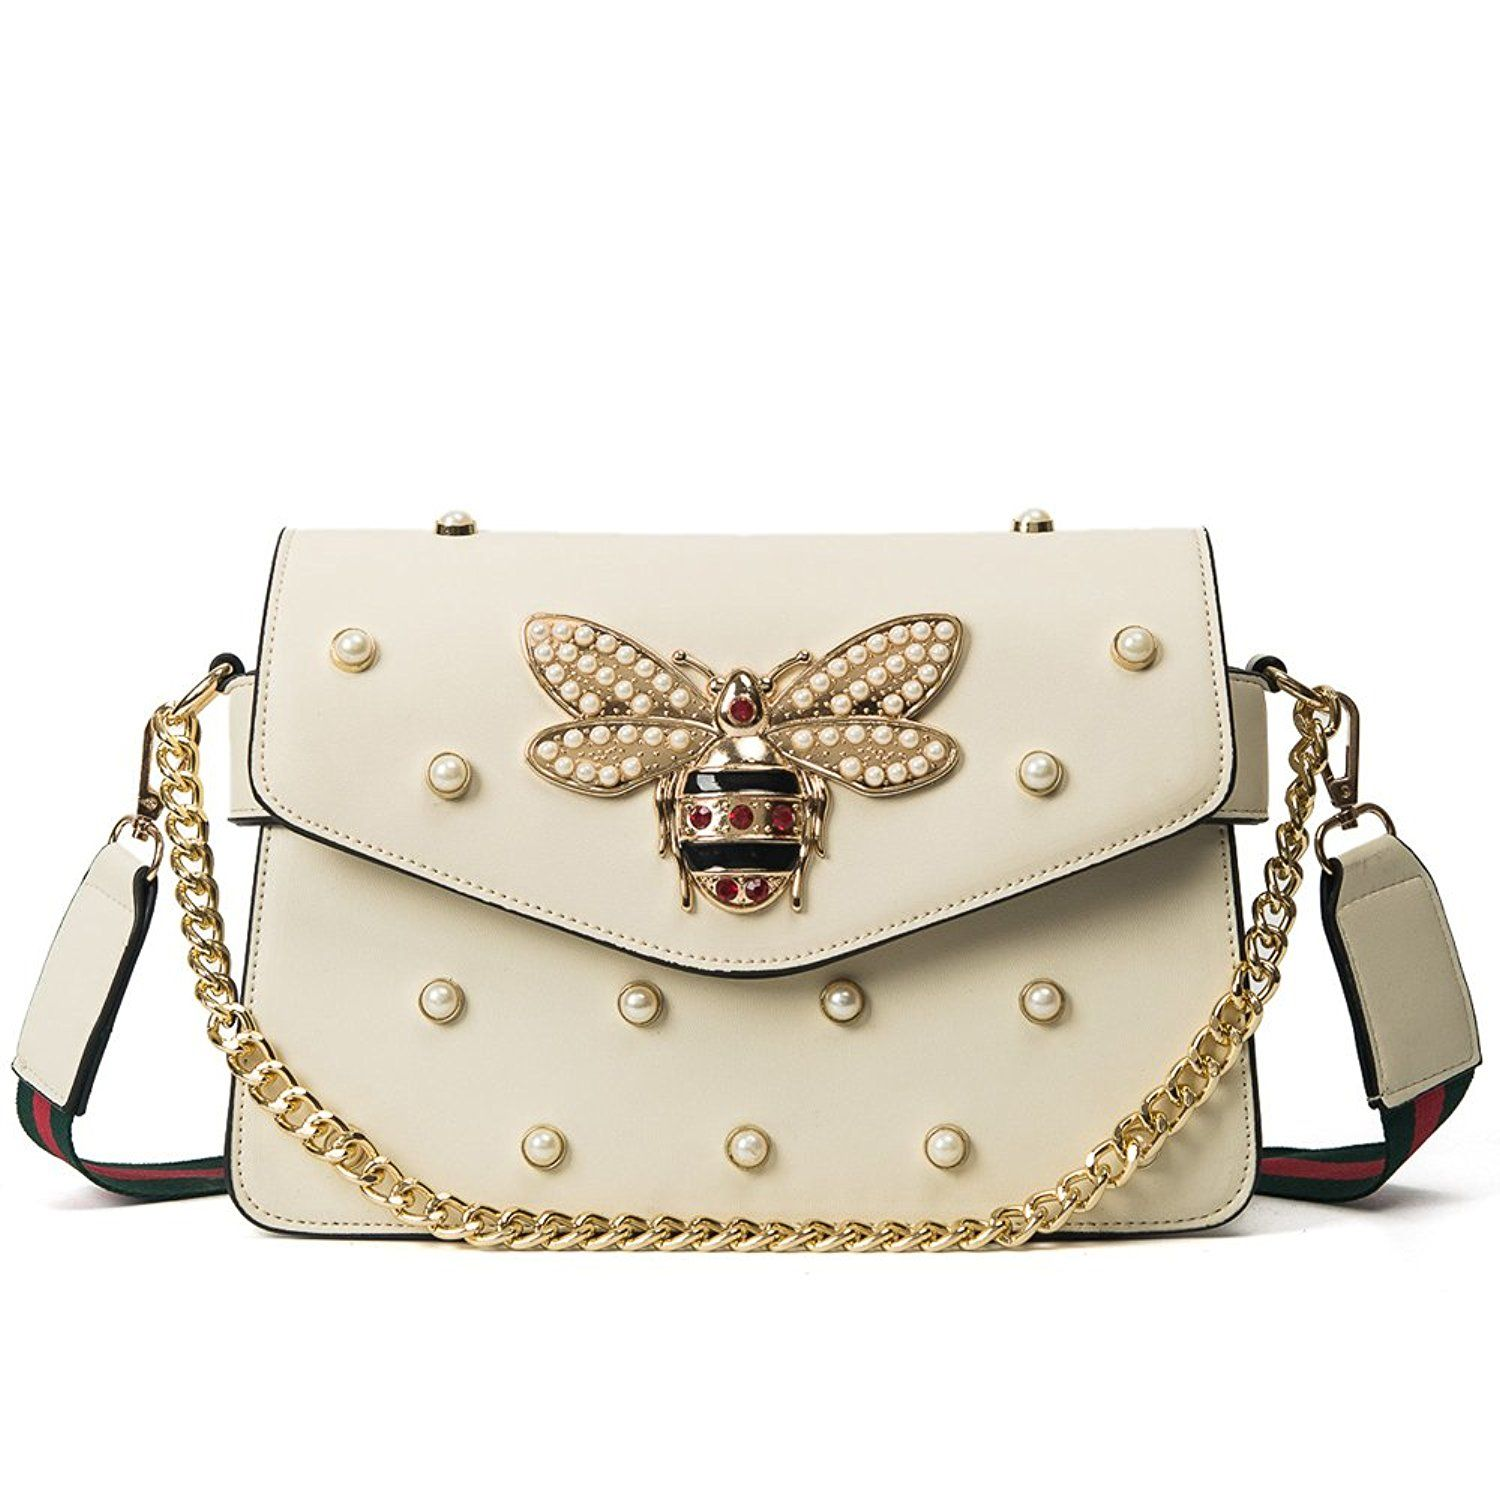 Women Messenger Bags Little bee Handbags crossbody bags Shoulder Bags  Designer Handbags with pearl: Handbags